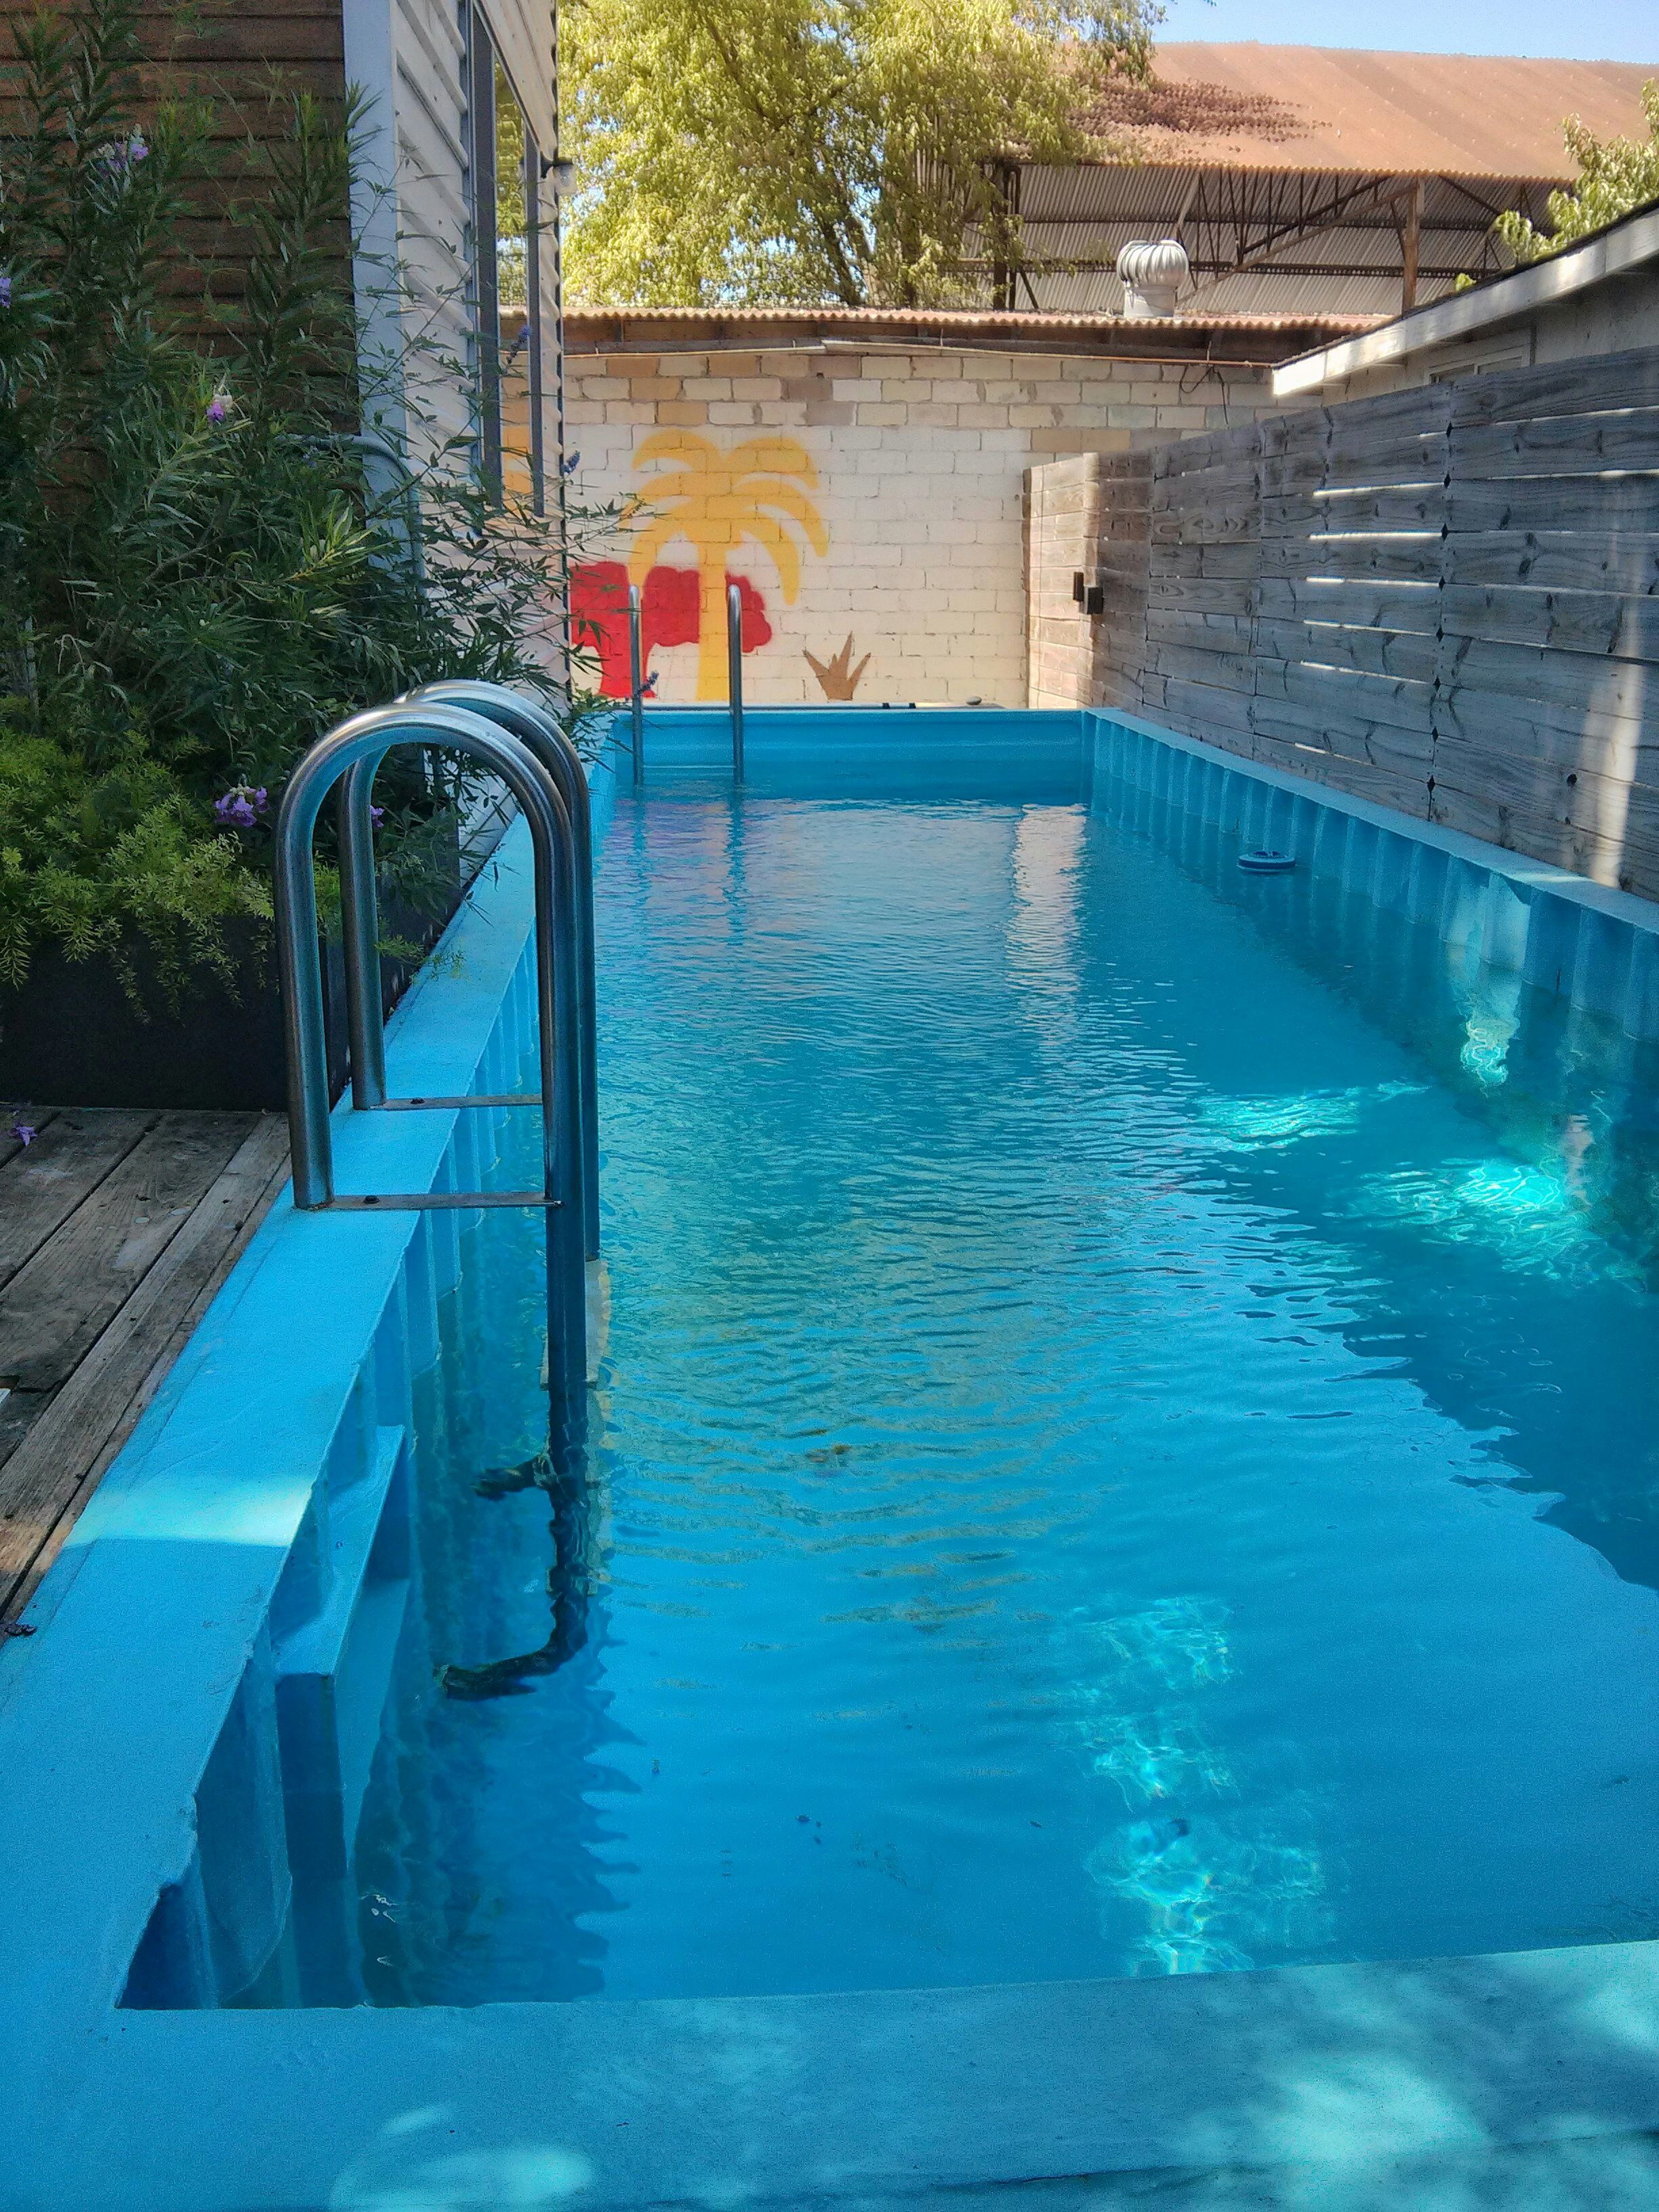 Shipping container pool 7 years out piscinas casas for Piscina container